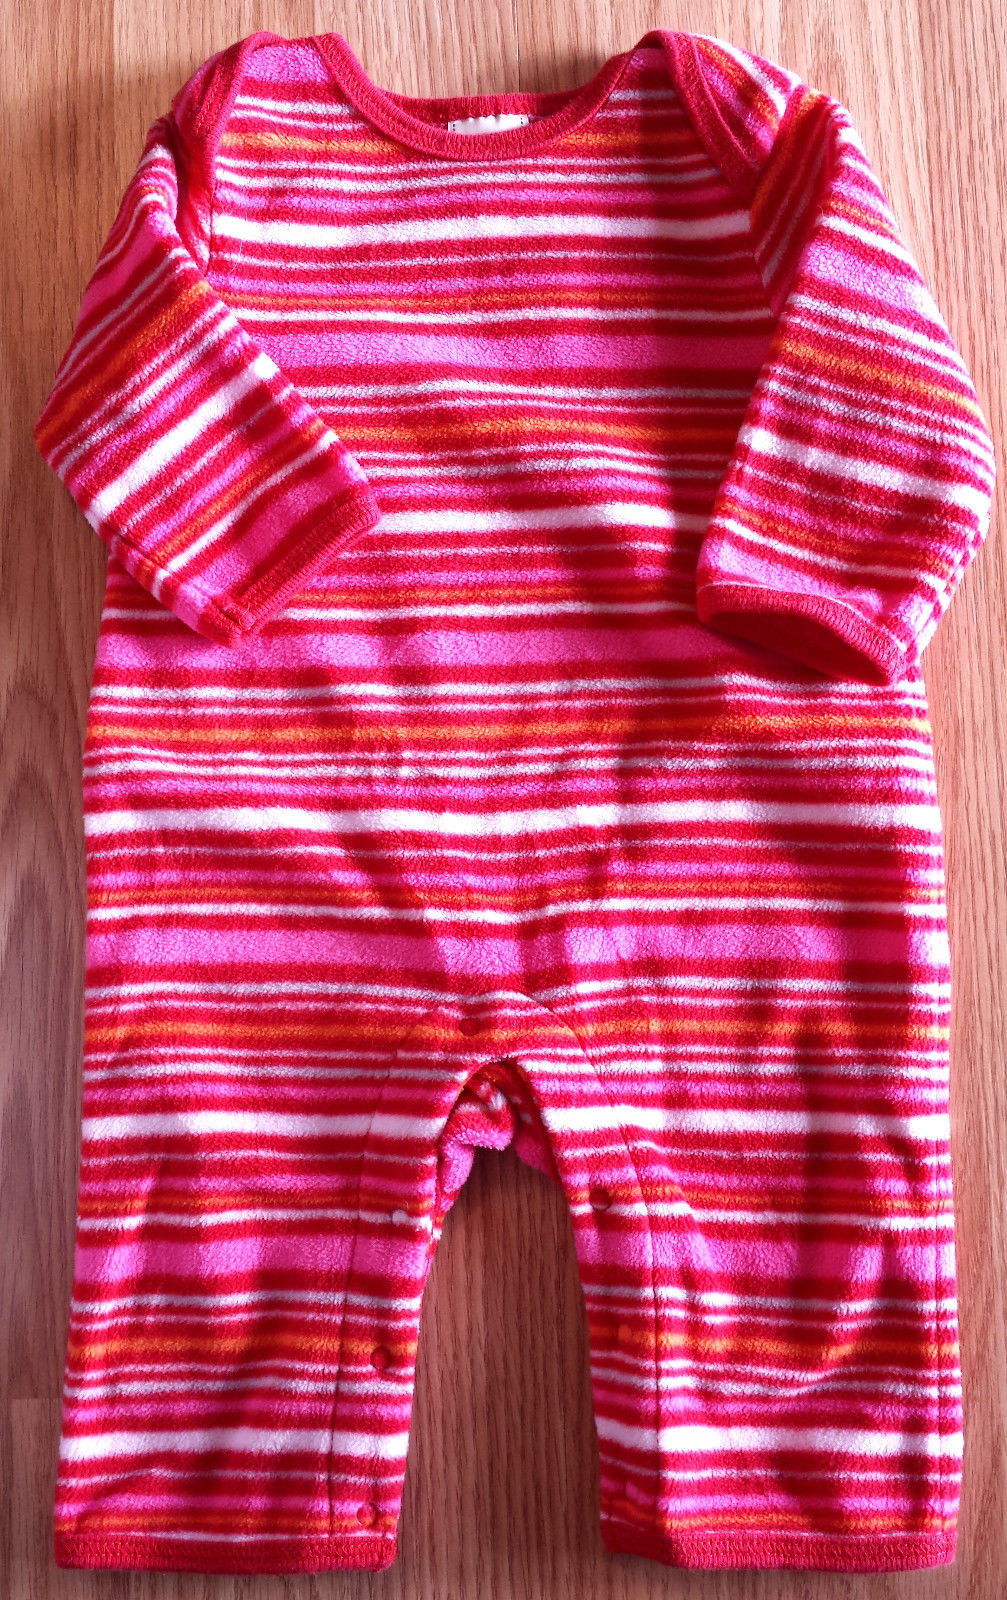 Girl's Size 0-3 M Months Old Navy Pink/ Red/ White Striped Fleece Pants Romper